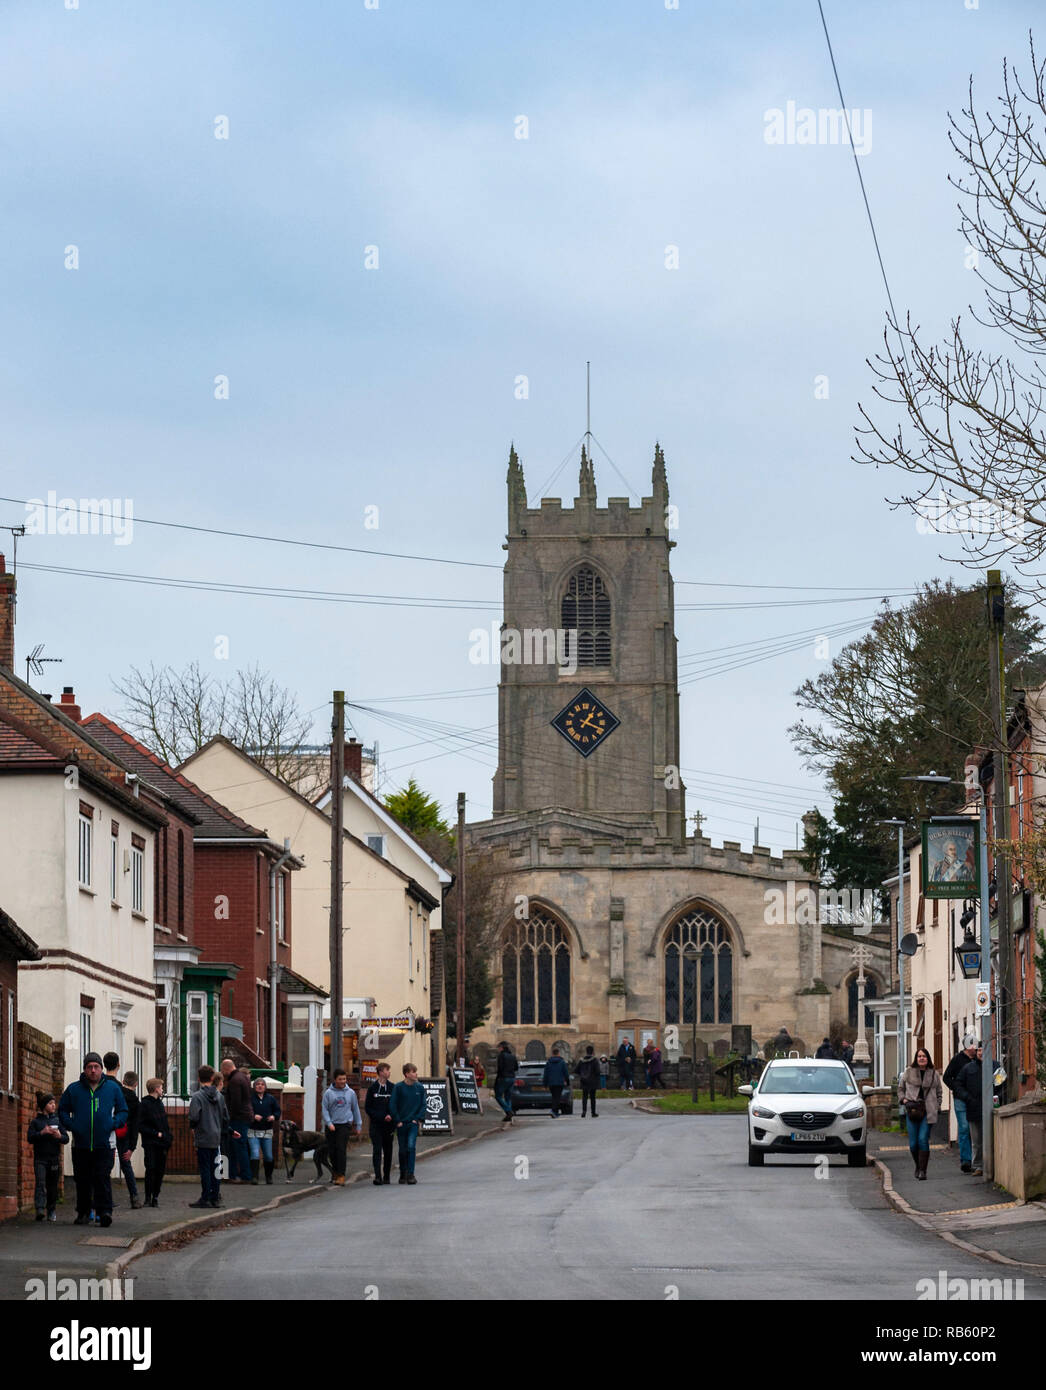 Haxey, Lincolnshire, England, UK – The Village Parish Church of Saint Nicholas the sight of the traditional ancient tradition of The Haxey Hood since the 14th Century. Stock Photo